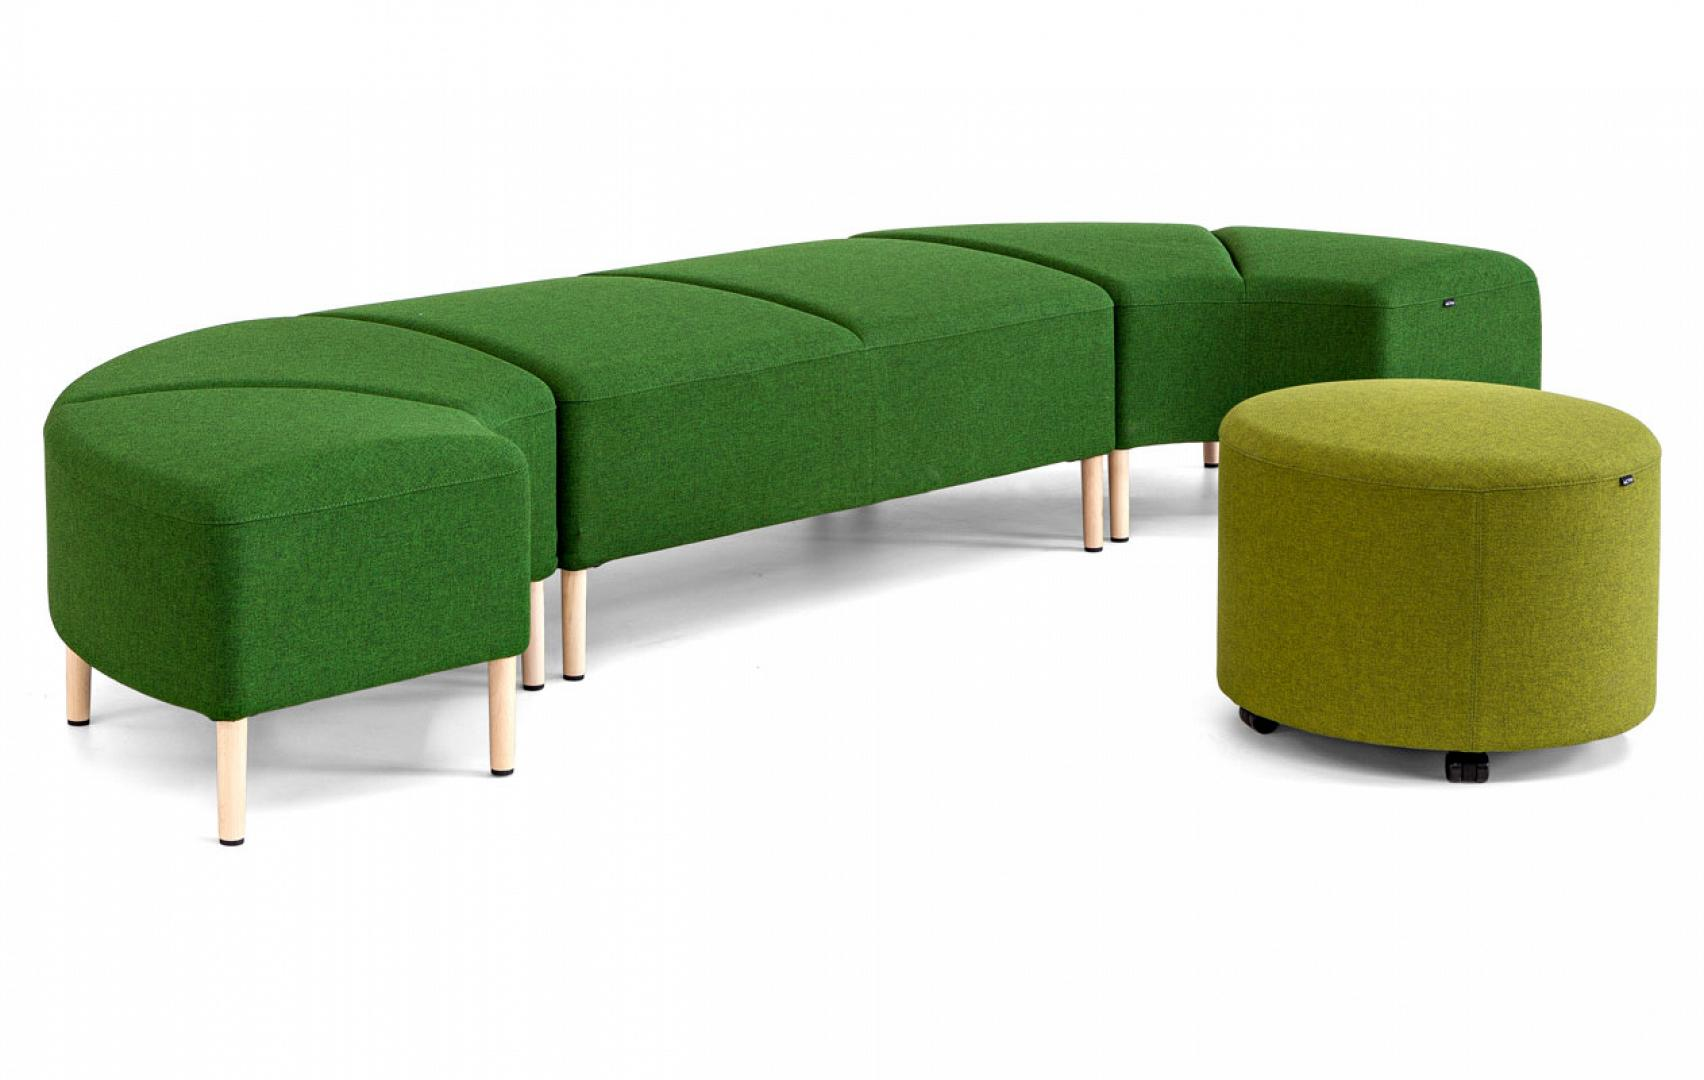 SOFT SEATING, warm appearance